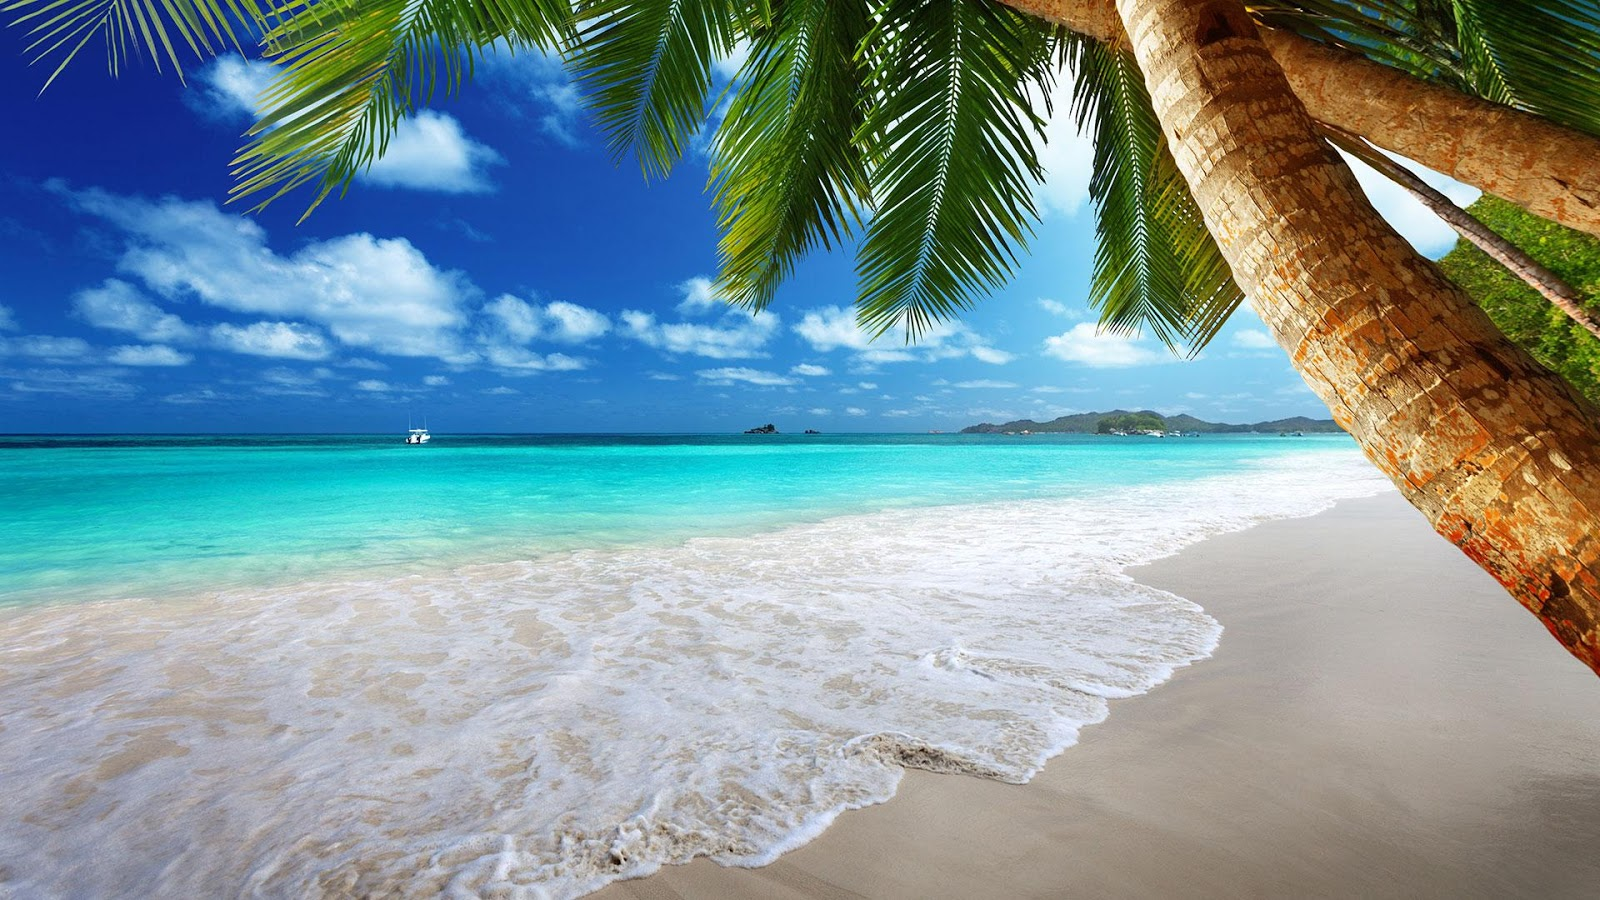 Tropical Beach, Palm Trees